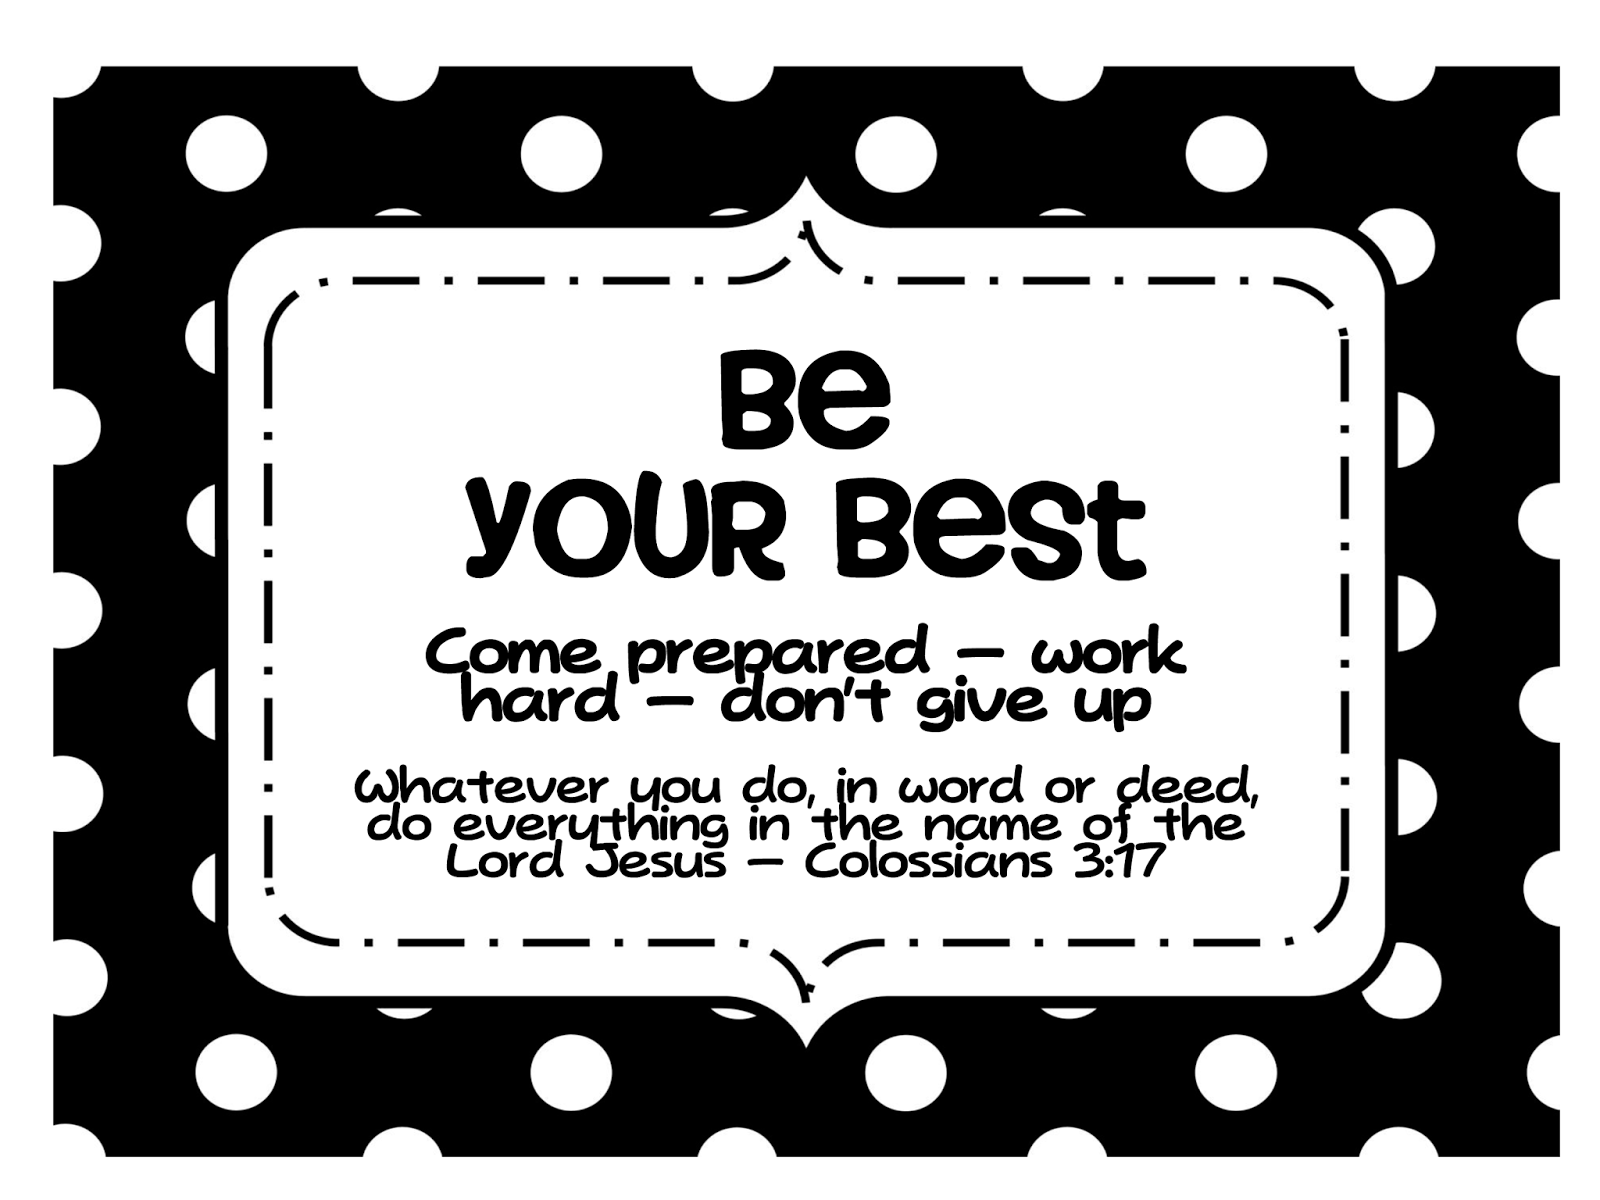 http://www.teacherspayteachers.com/Product/Classroom-Rule-Posters-with-Scripture-1337654